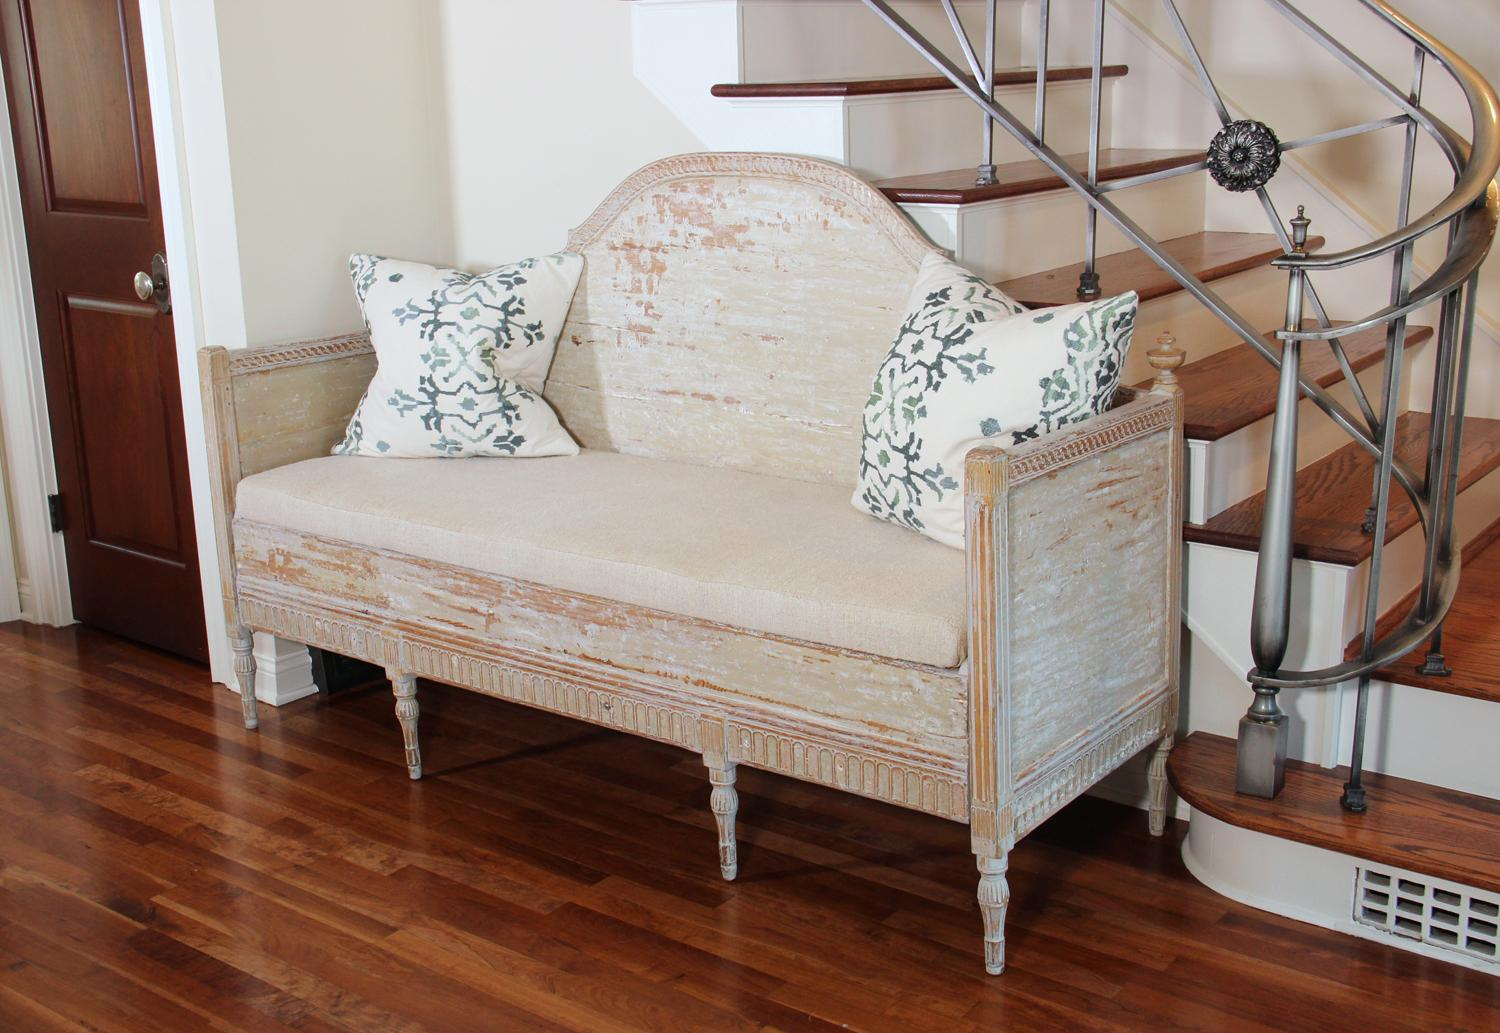 A Swedish Sofa With Pull Out Trundle Bed From The Gustavian Period Hand  Scraped To